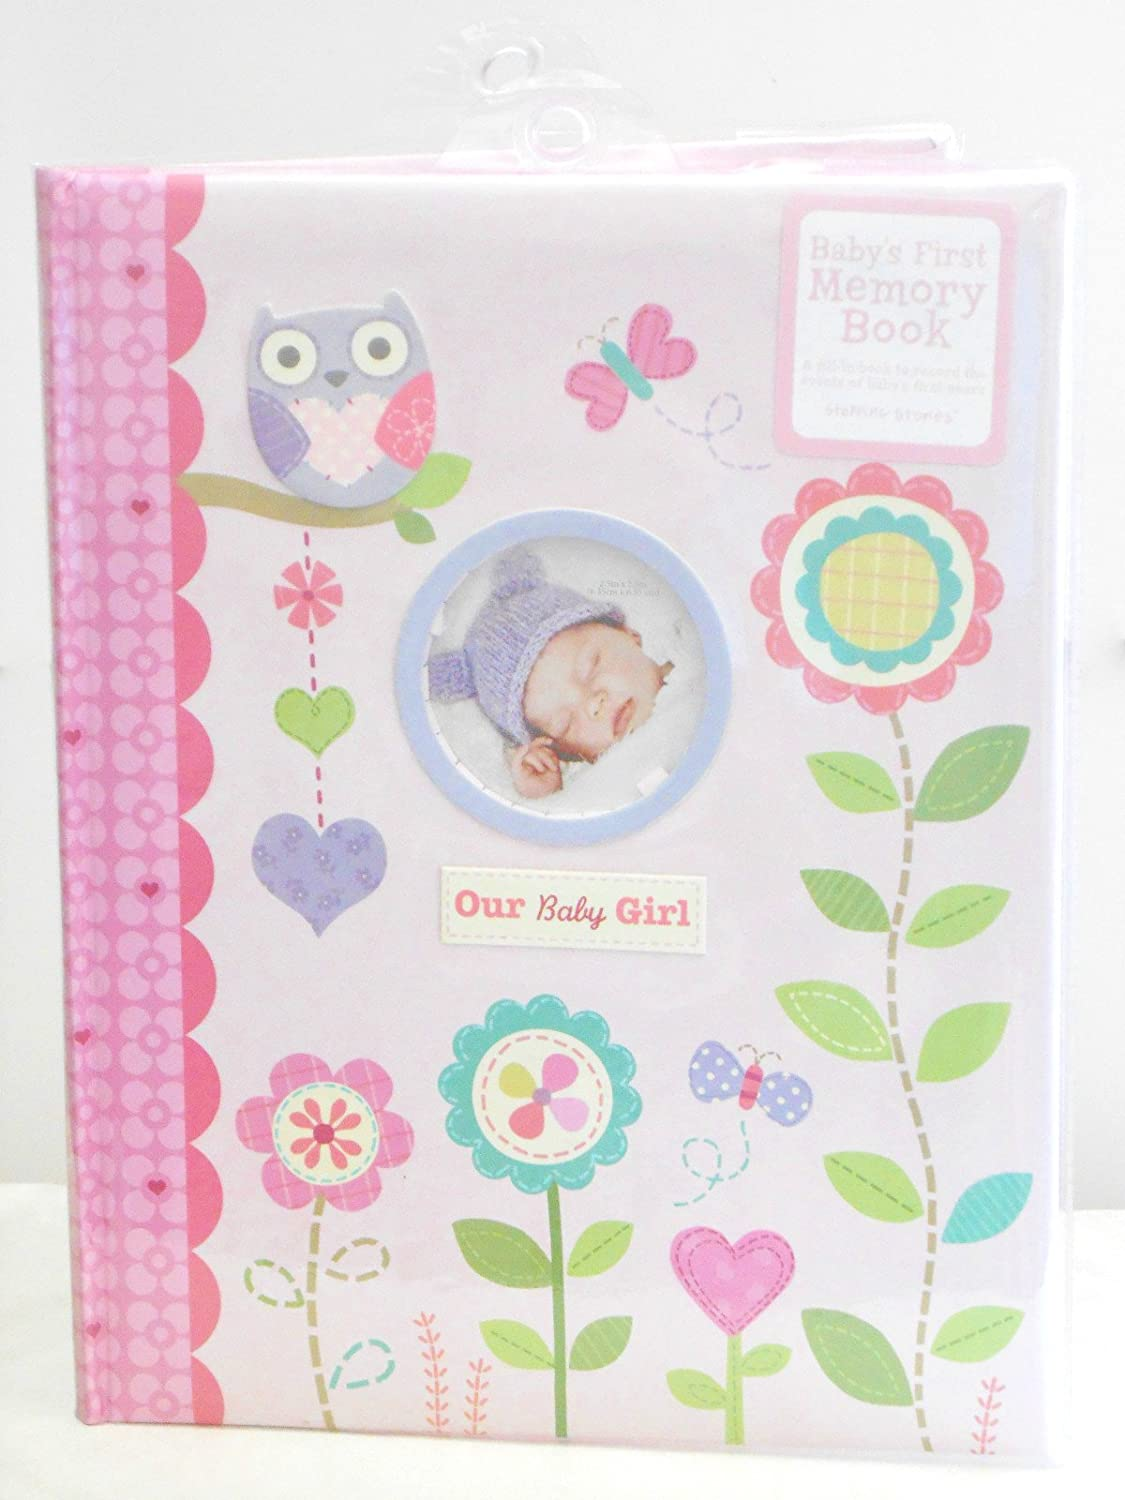 Baby's First Memory Book Our Baby Girl Pink with Flowers, Owls, Hearts, & Butterflies CR Gibson MB2-12023